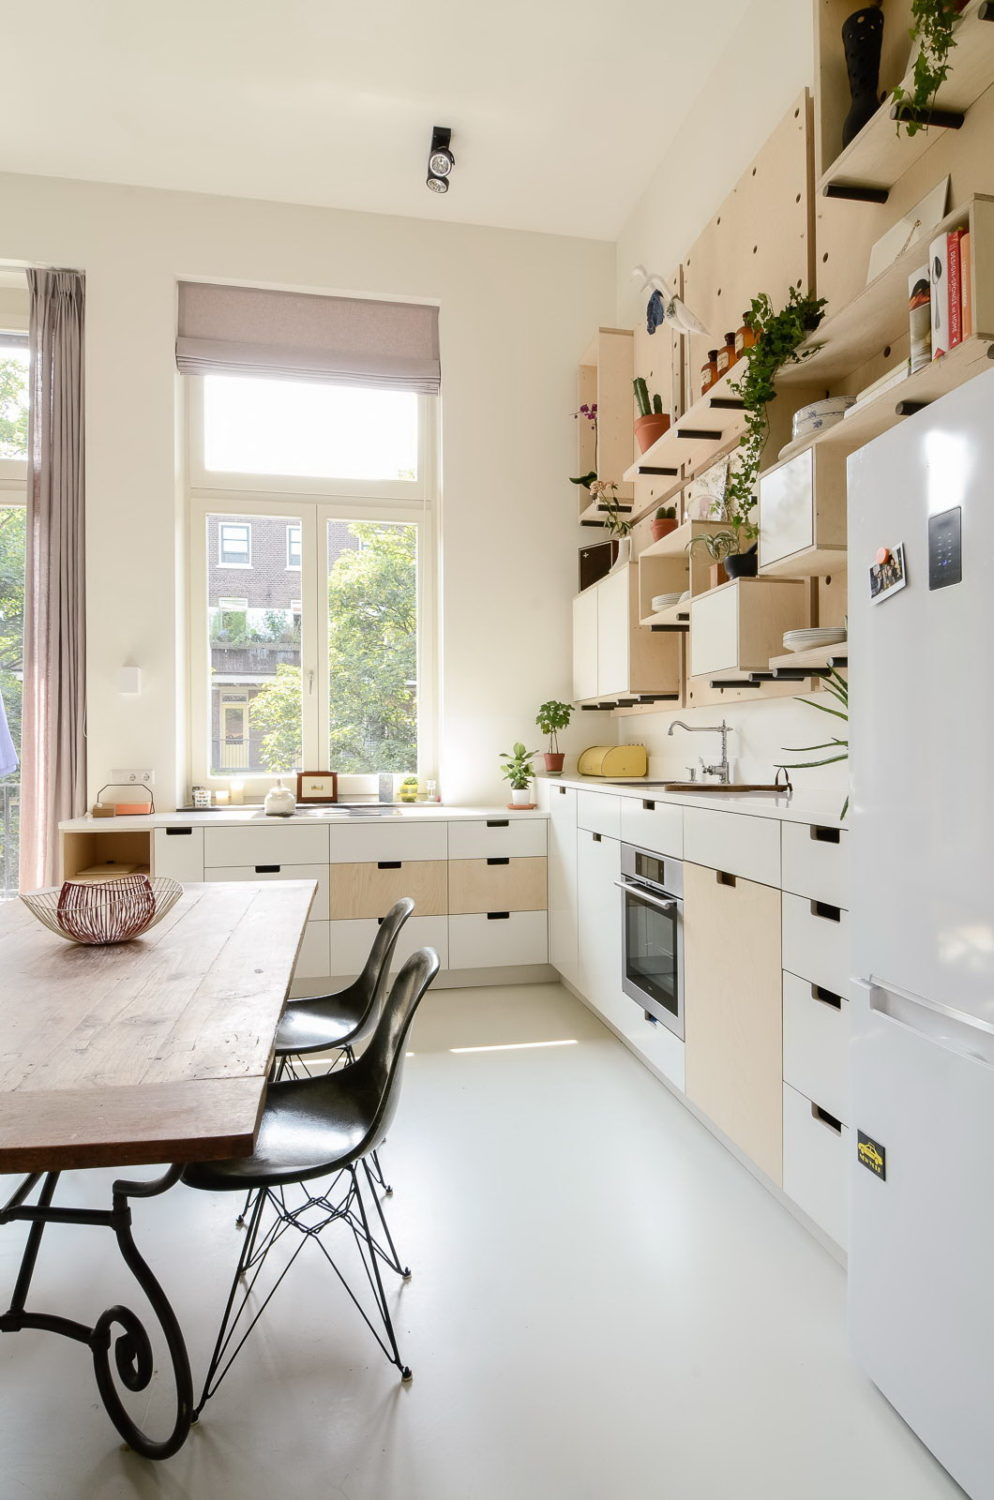 """Old school conversion """"Ons dorp"""" in Amsterdam"""